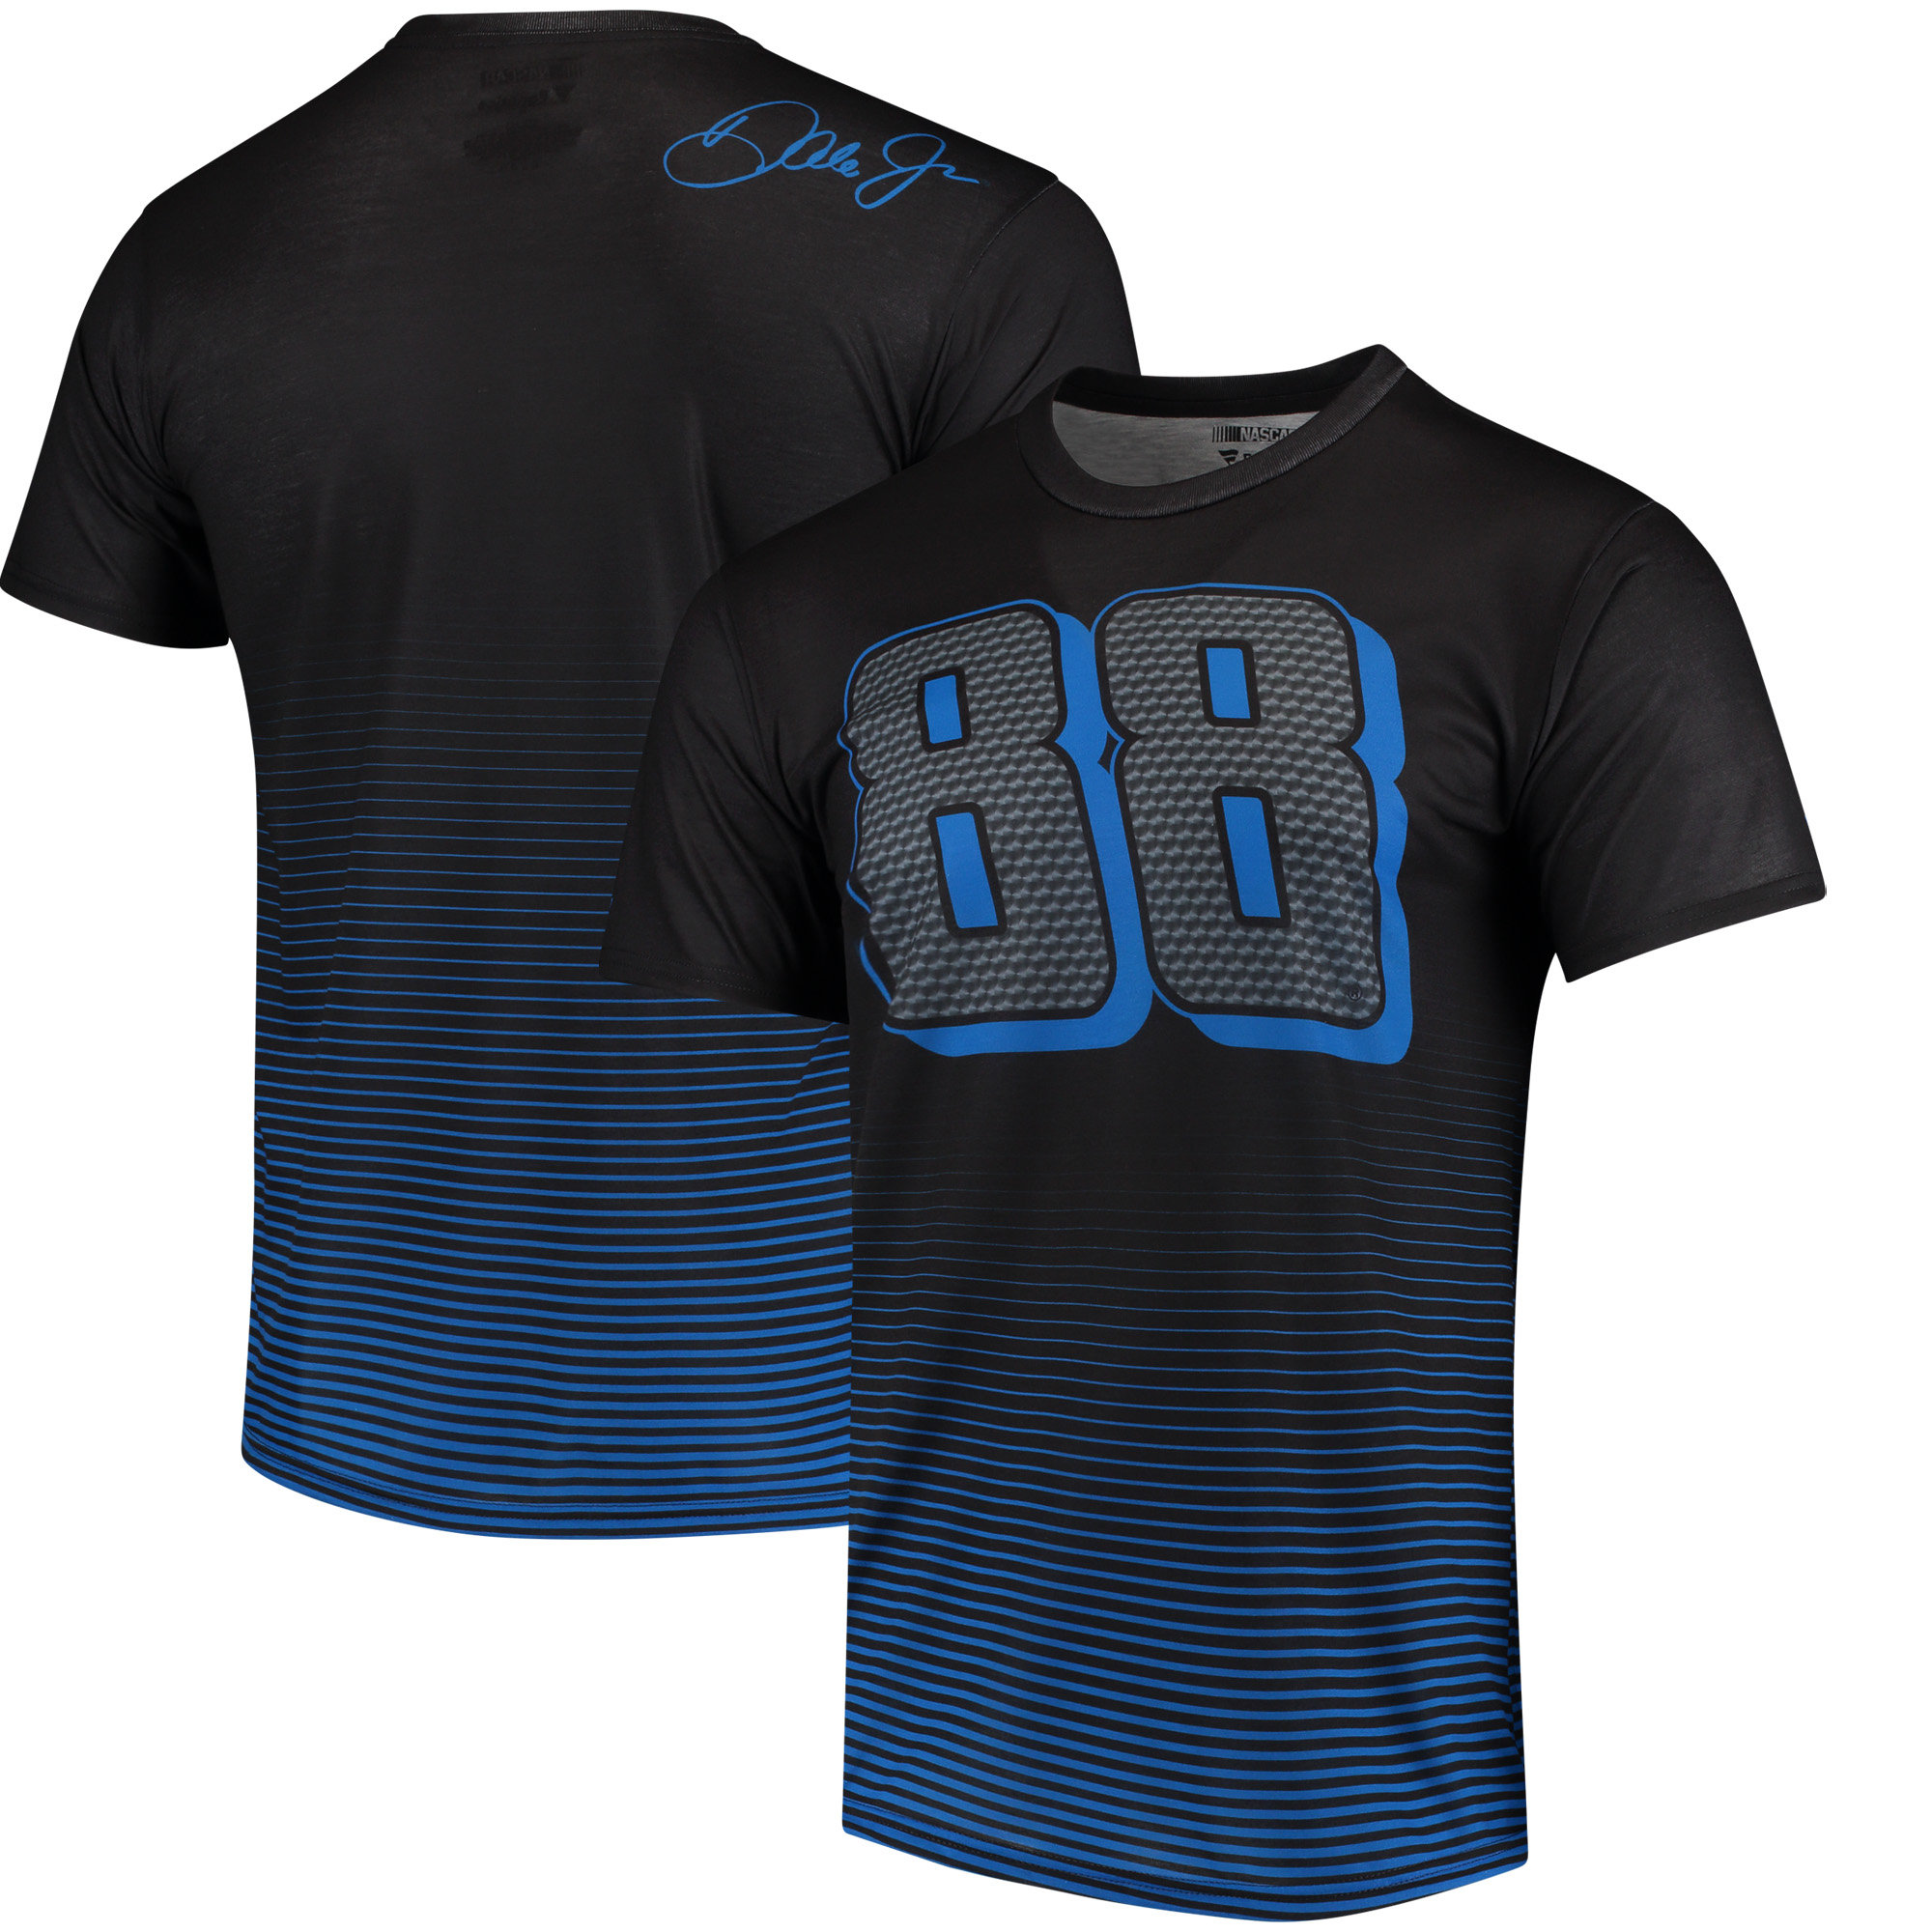 Dale Earnhardt Jr. Fanatics Branded Nationwide Speed Lab Gradient T-Shirt - Black/Blue